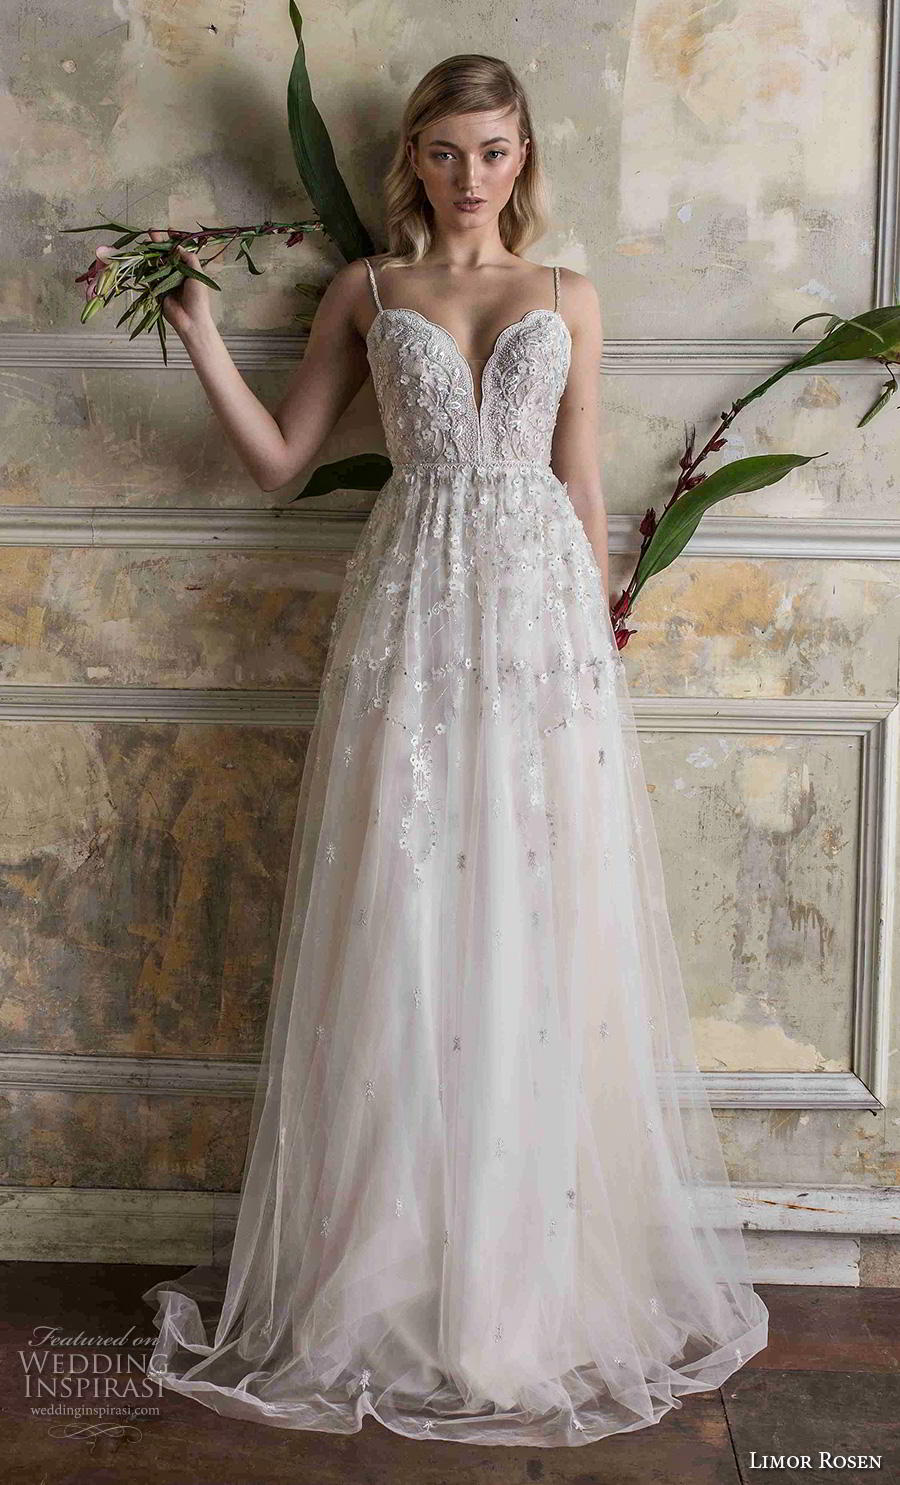 limor rosen 2019 bridal thin strap deep plunging sweetheart neckline heavily embellished bodice romantic a  line wedding dress backless sweep train (1) mv